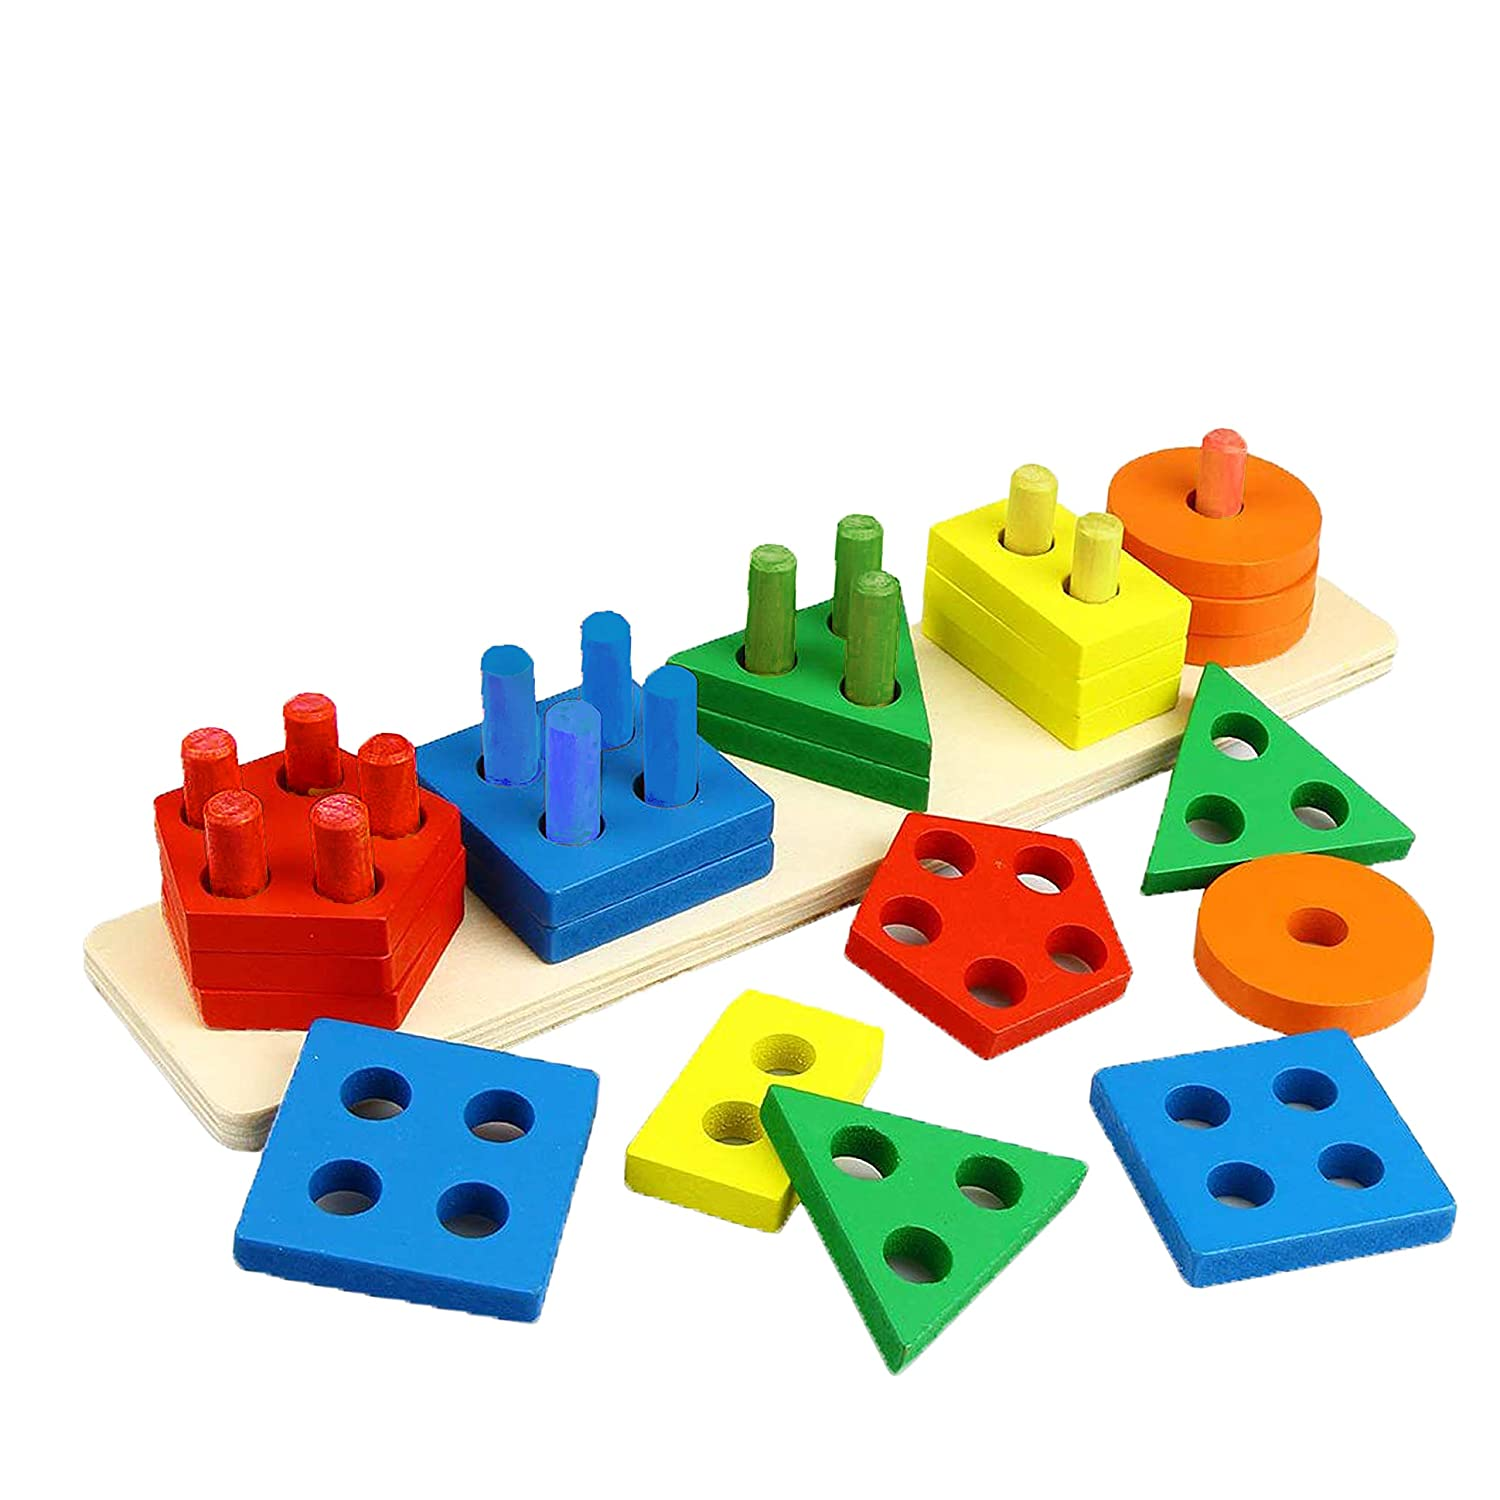 Wooden educational sorting and stacking toy Learn color and shape recognition Kids Montessori education puzzle blocks toy for toddlers preschool Children game